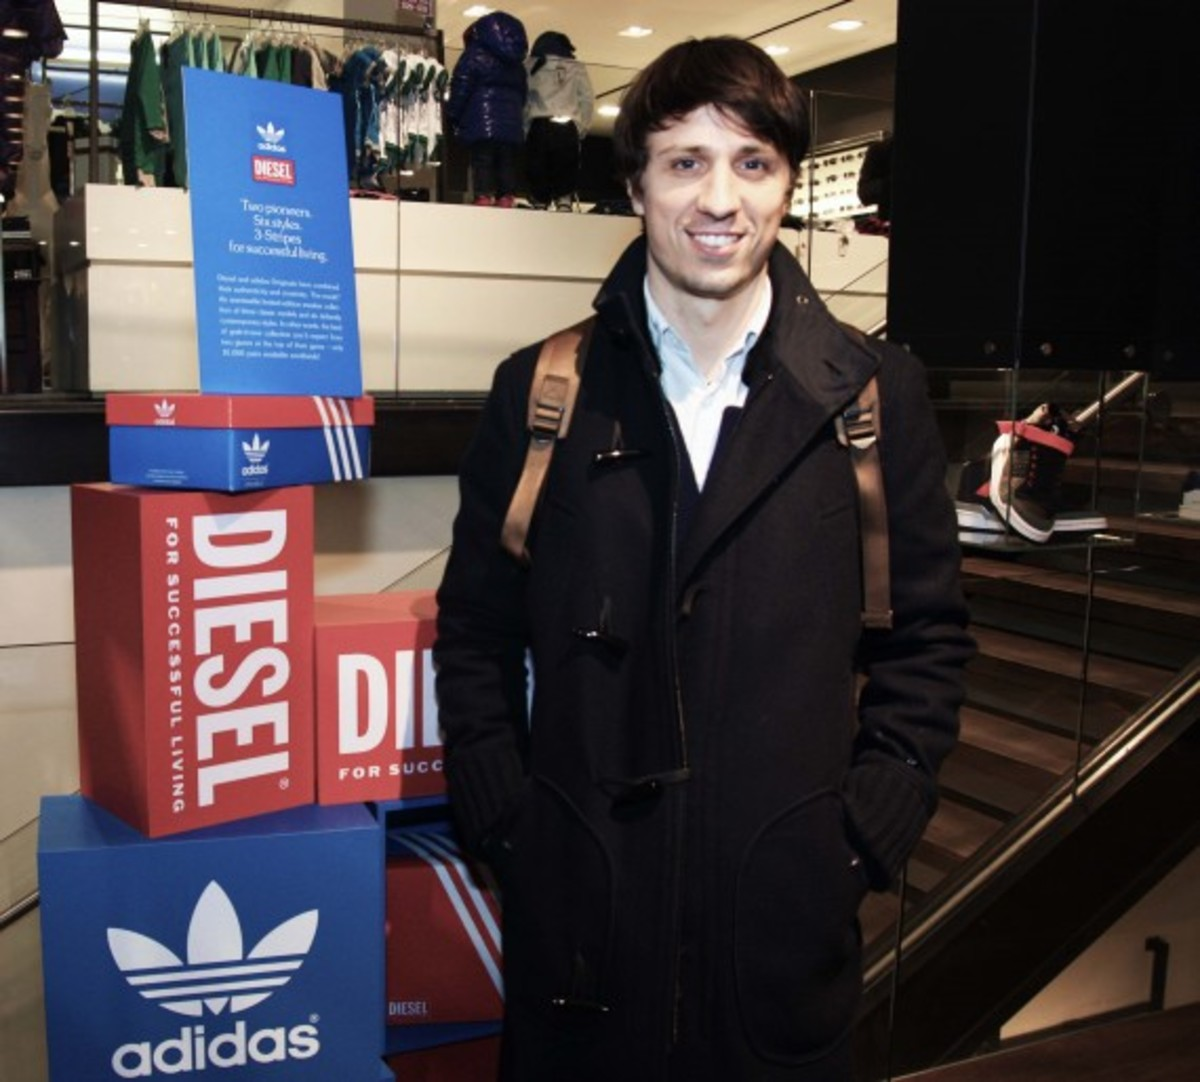 adidas-originals-diesel-capsule-sneaker-collection-event-recap-02